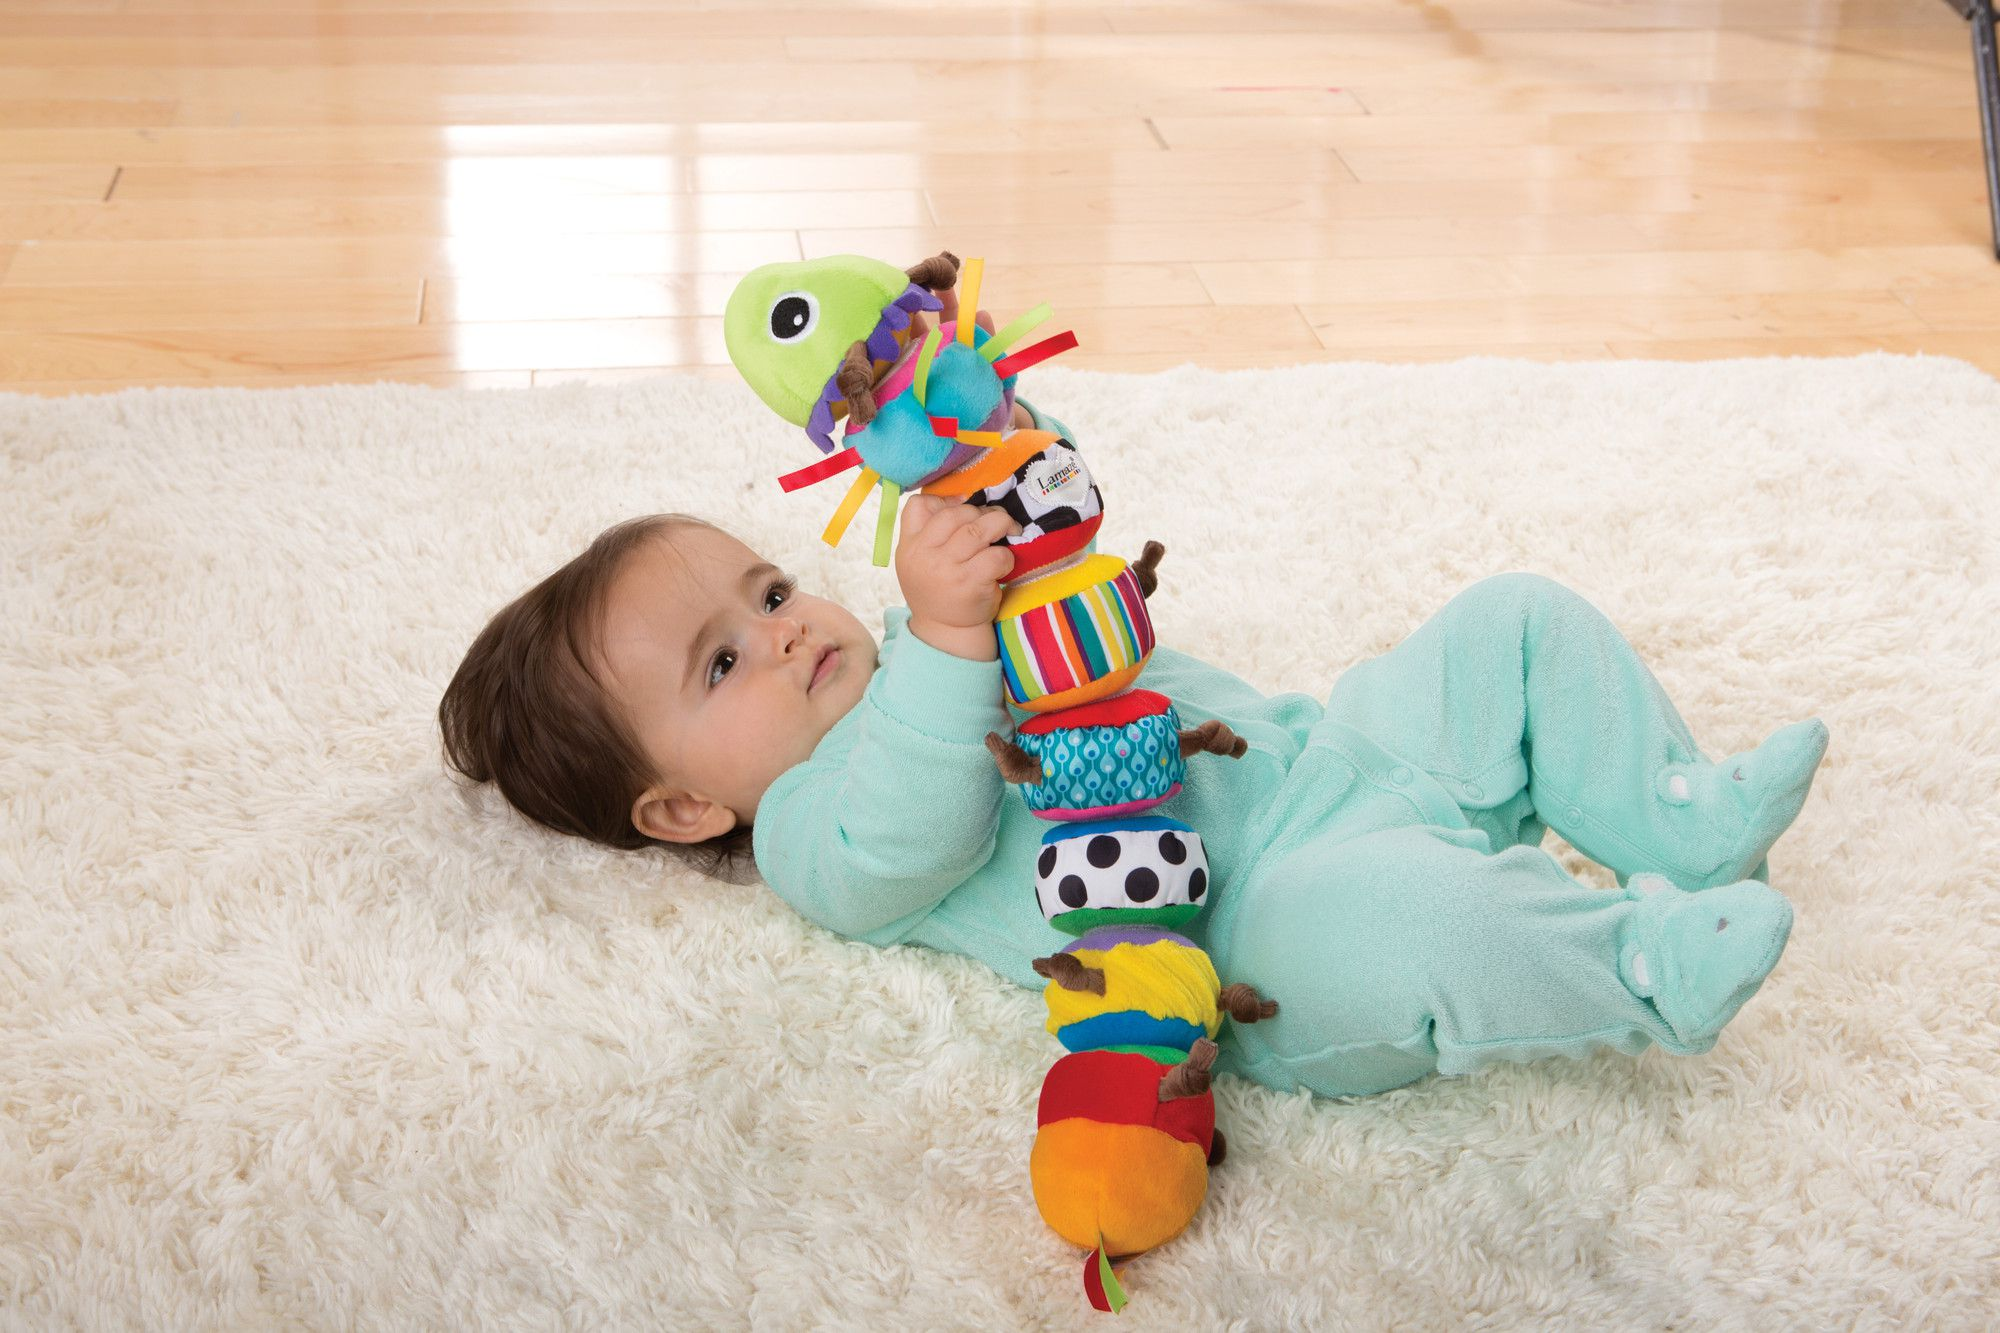 What Are The Best Baby Toys For Ages 6 To 12 Months